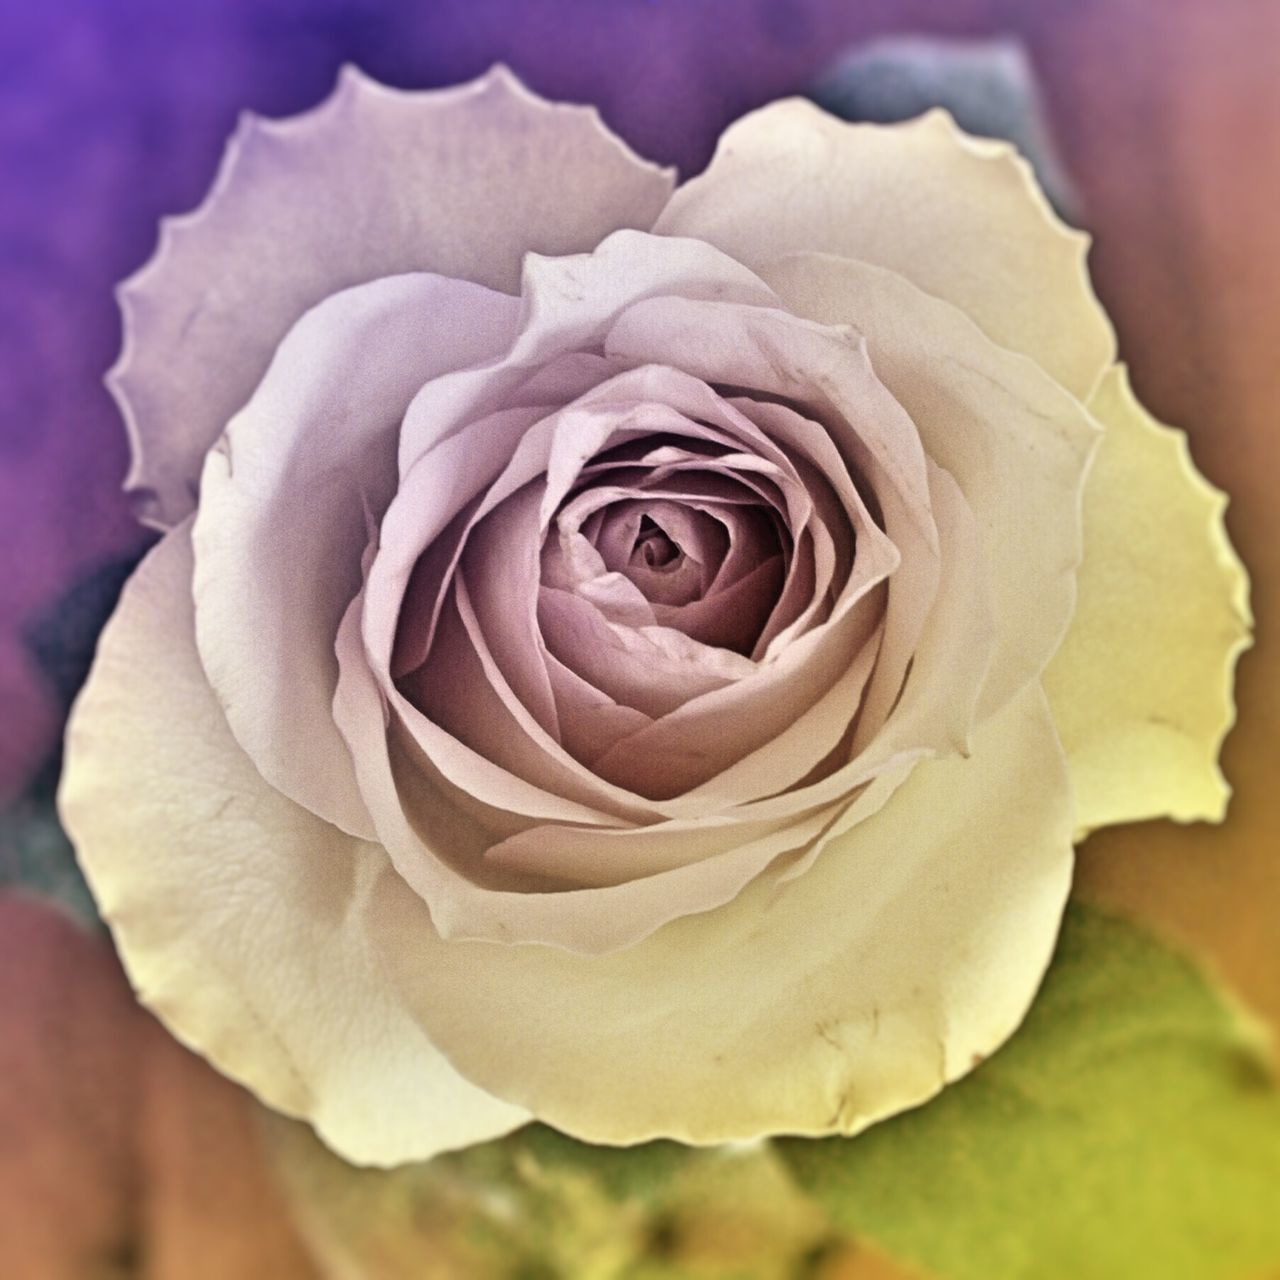 flower, petal, nature, beauty in nature, growth, rose - flower, blossoming, flower head, softness, love, plant, flora, fragility, beauty, freshness, no people, blooming, soft focus, friendship, close-up, outdoors